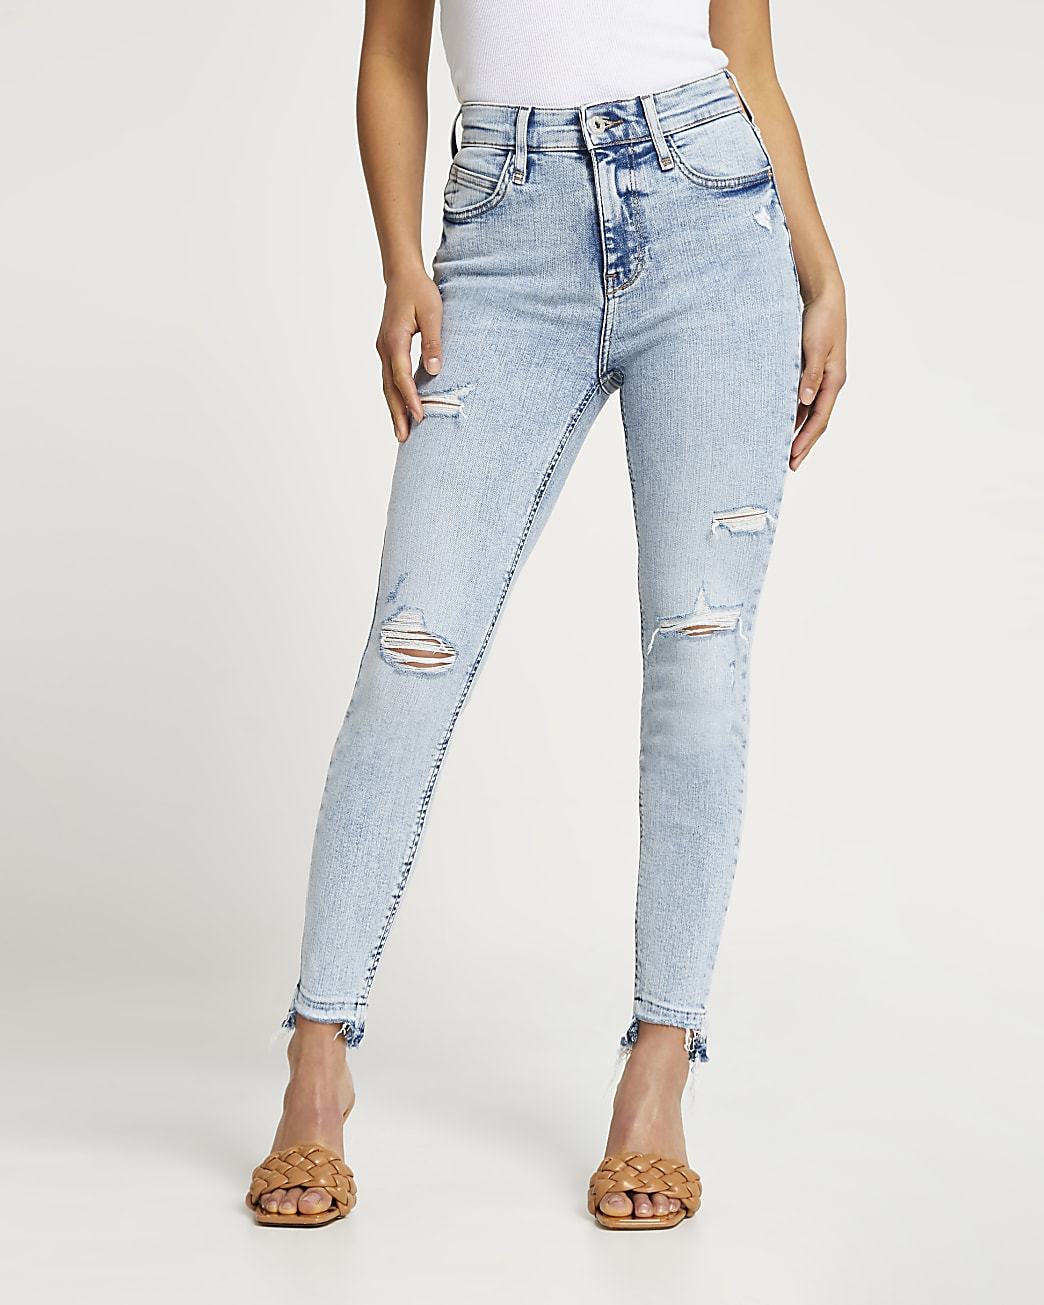 Petite blue high waisted ripped skinny jeans